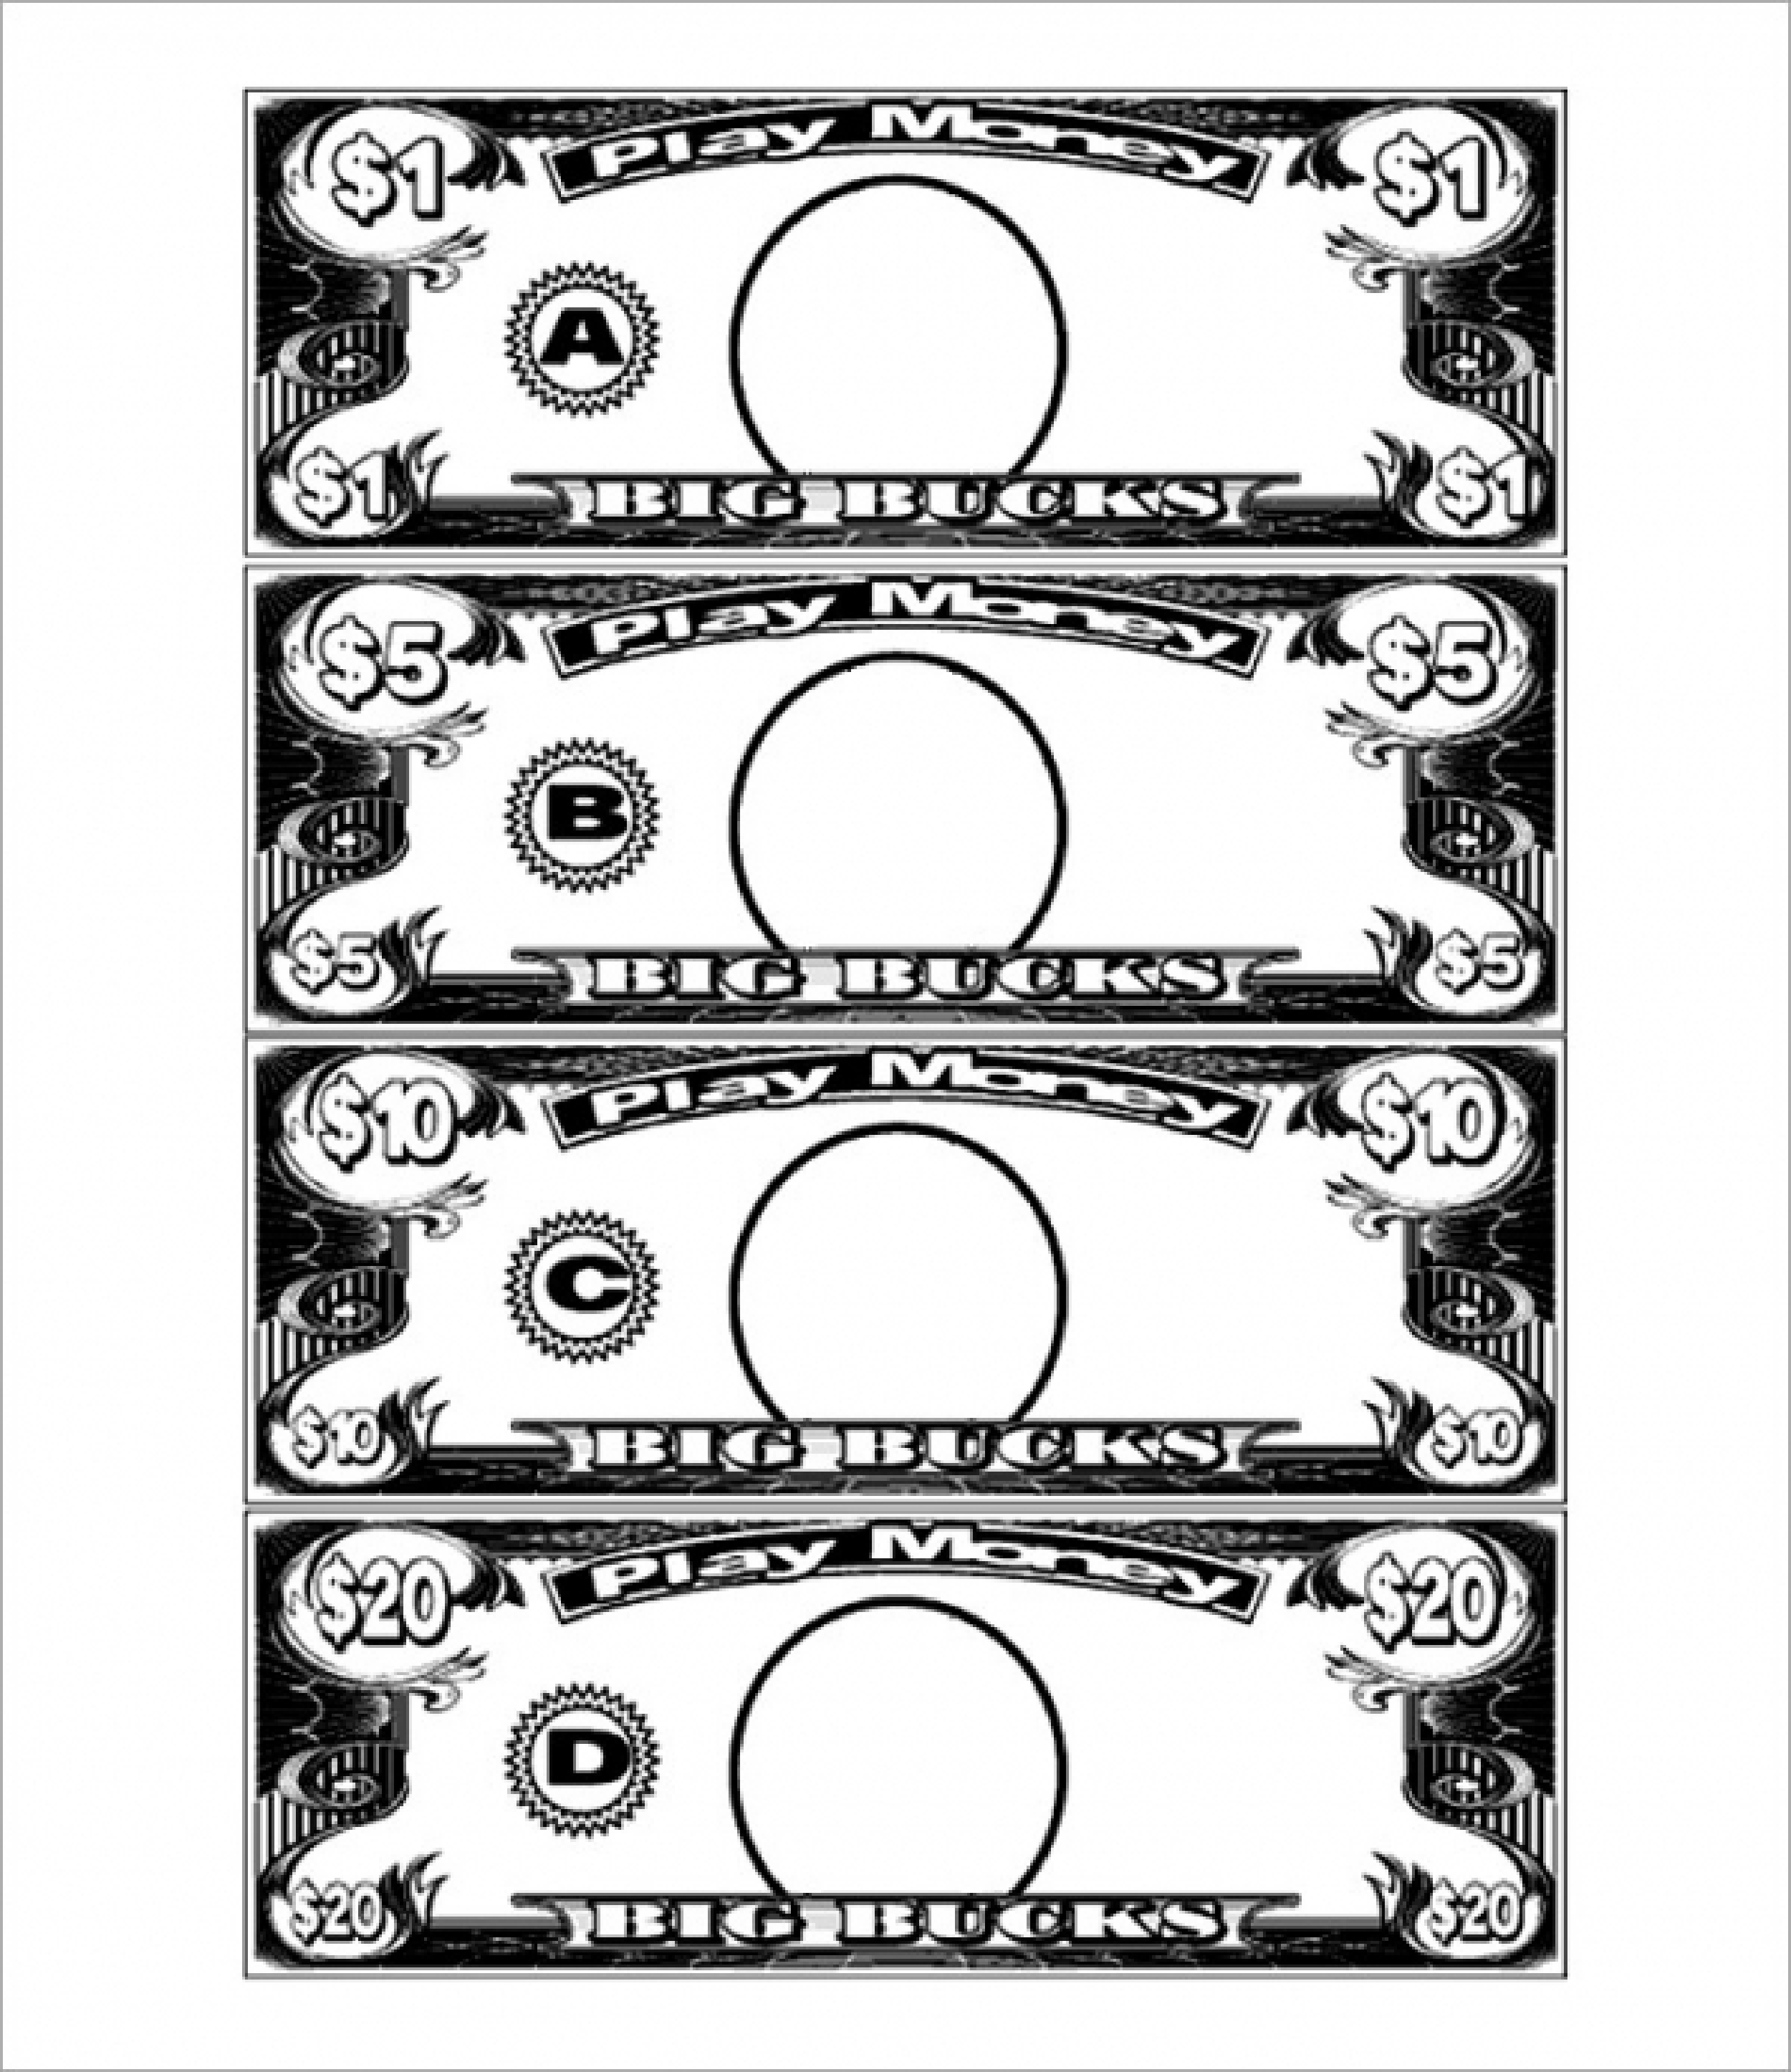 photograph relating to Printable Play Money Templates referred to as 1 Greenback Participate in Financial template Templates at